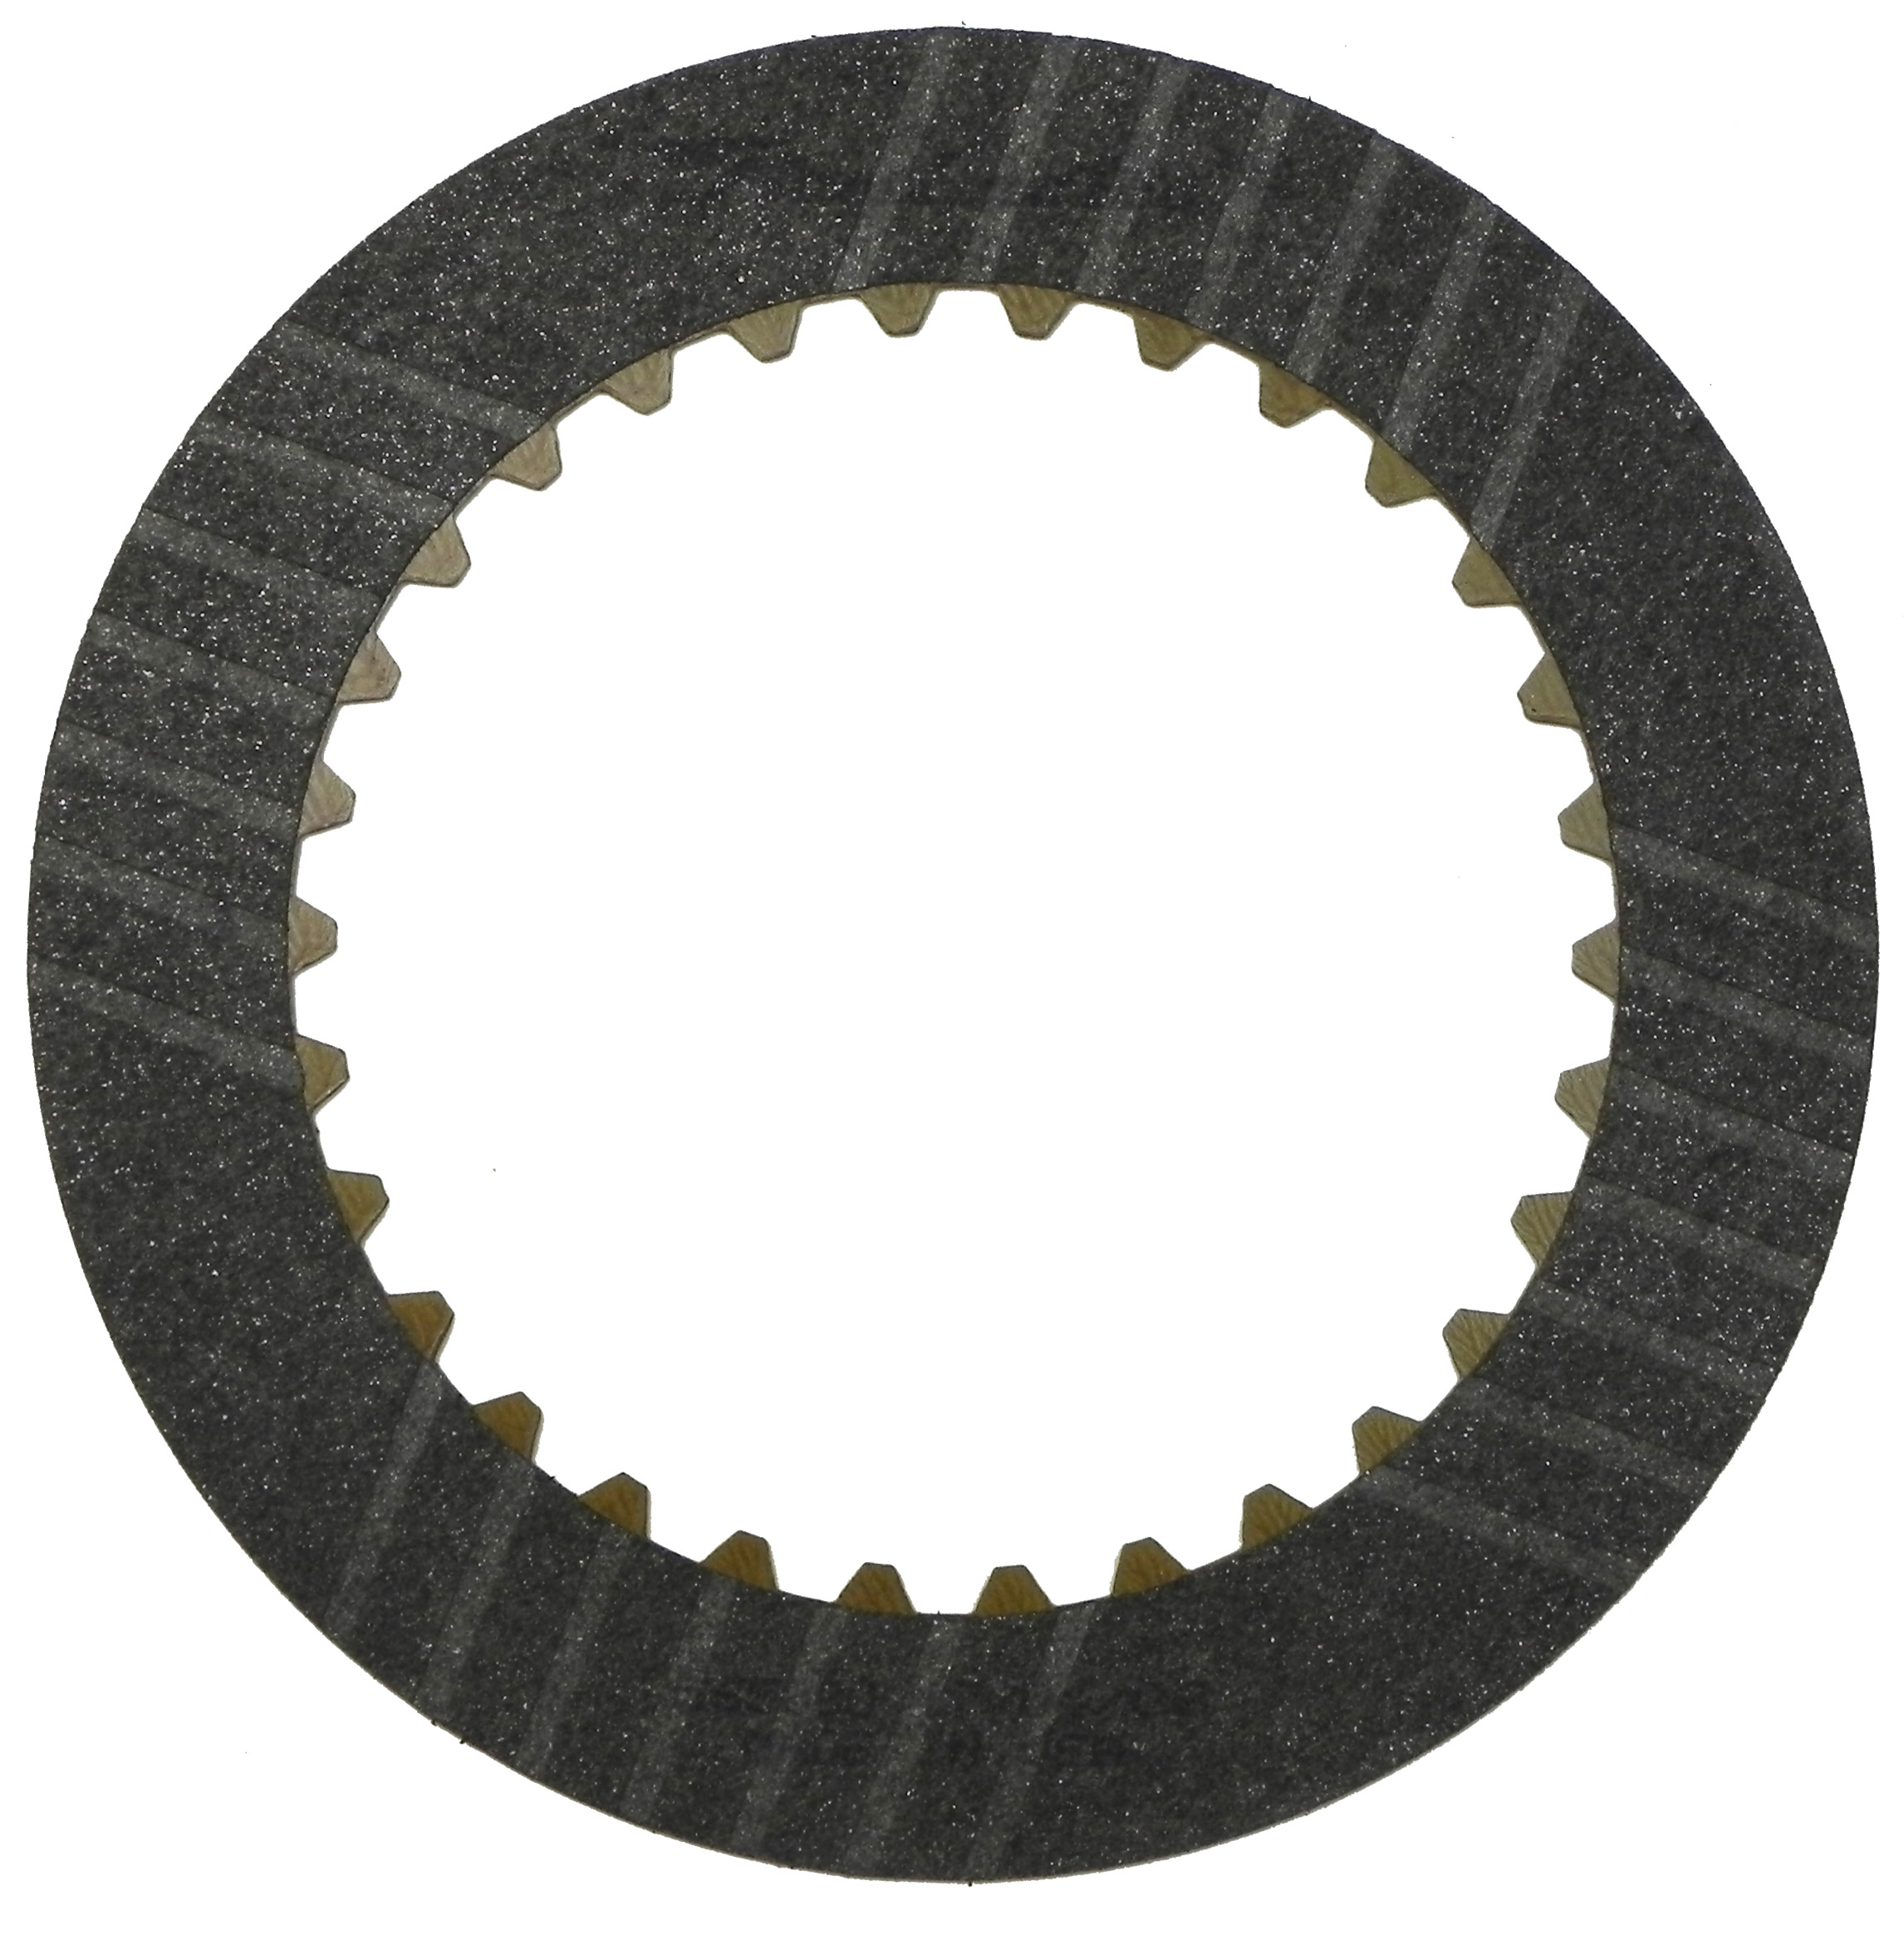 R565080 | 1997-2008 Friction Clutch Plate High Energy Direct Clutch High Energy (Coverage 2005-10/30/2006)